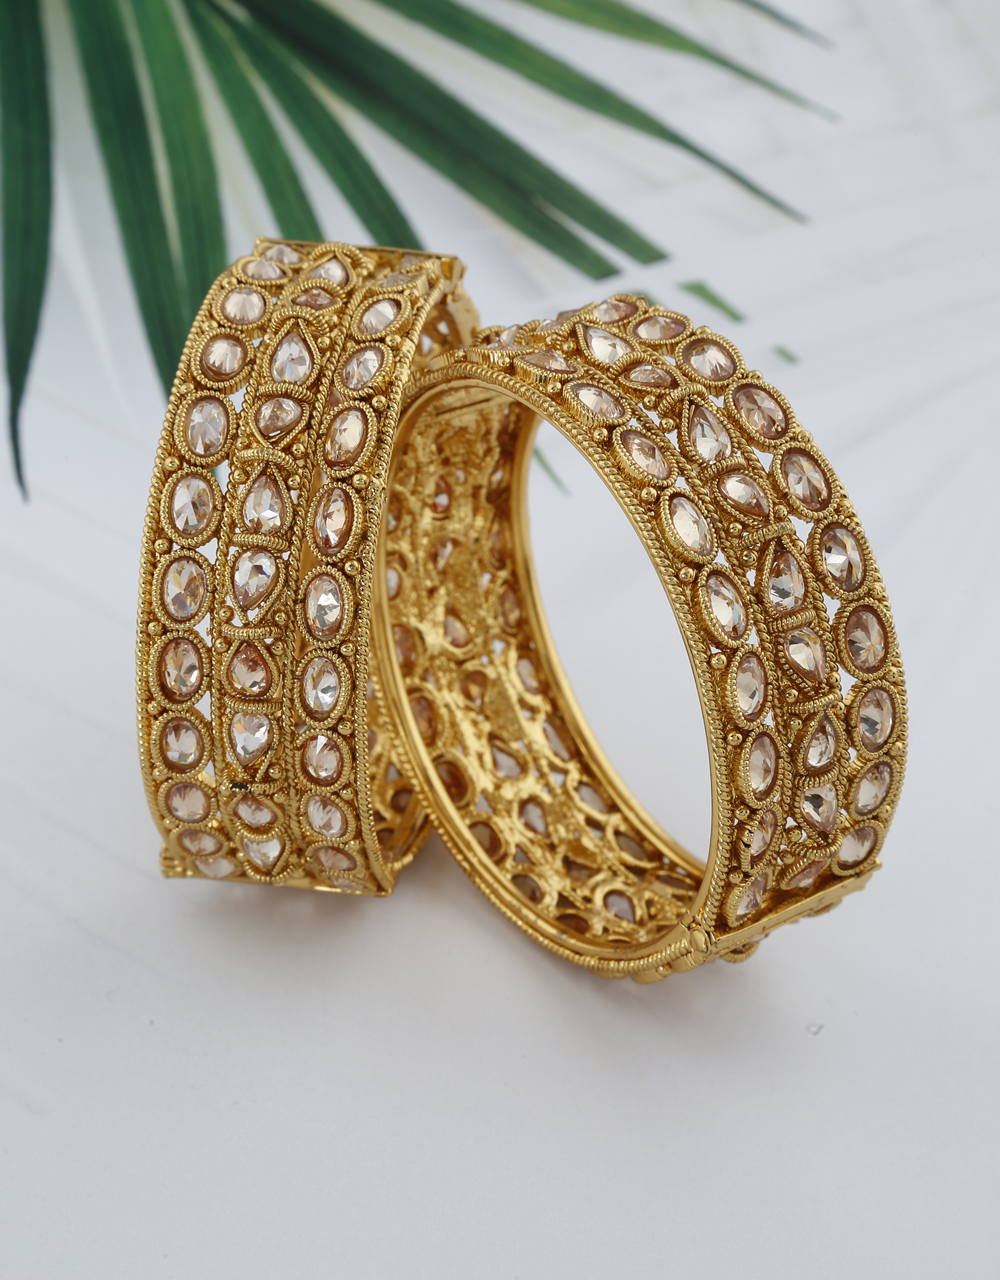 Sparkling golden bangles decked with LCT stones for women